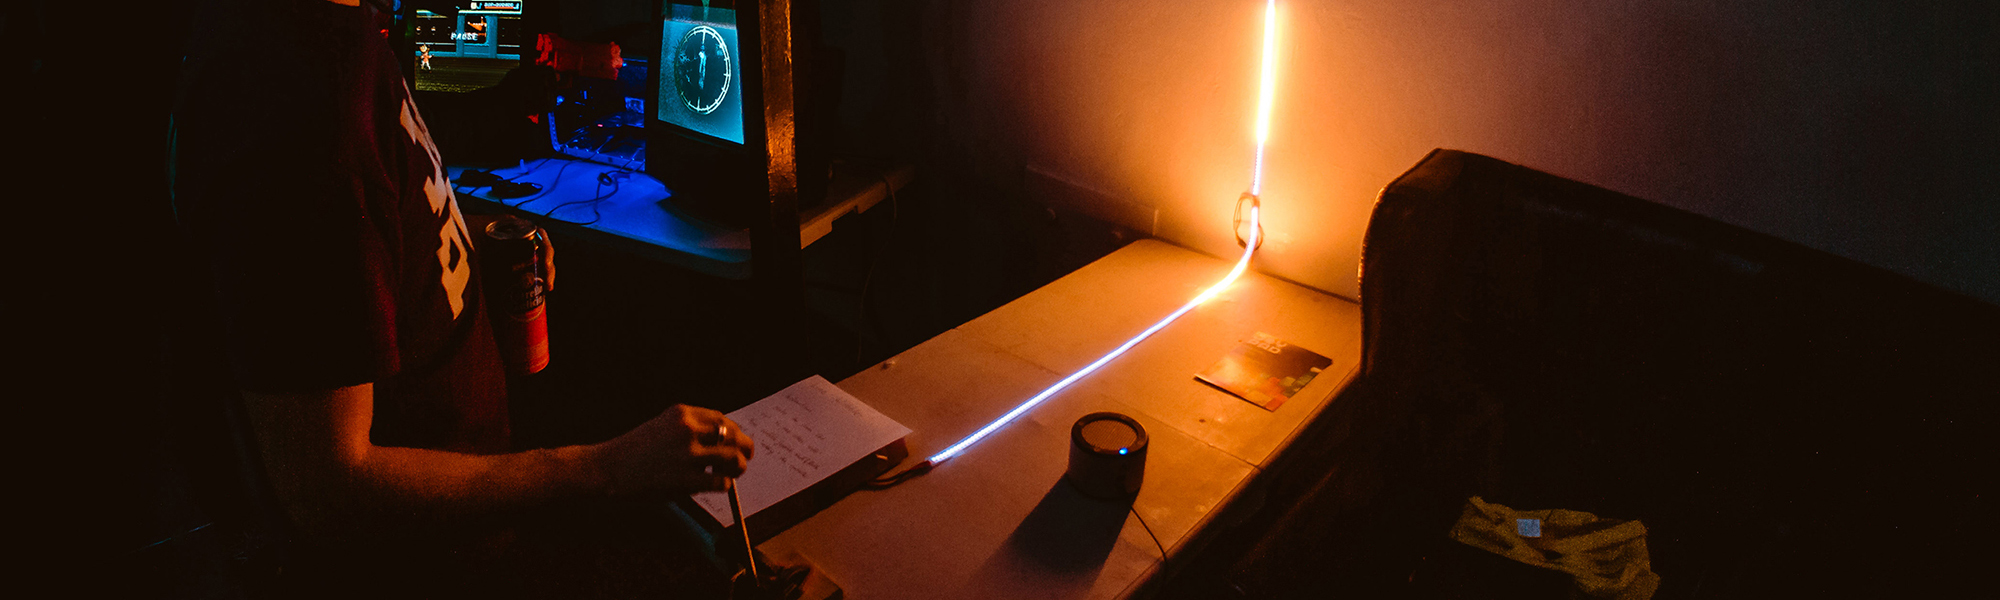 line wobbler_header